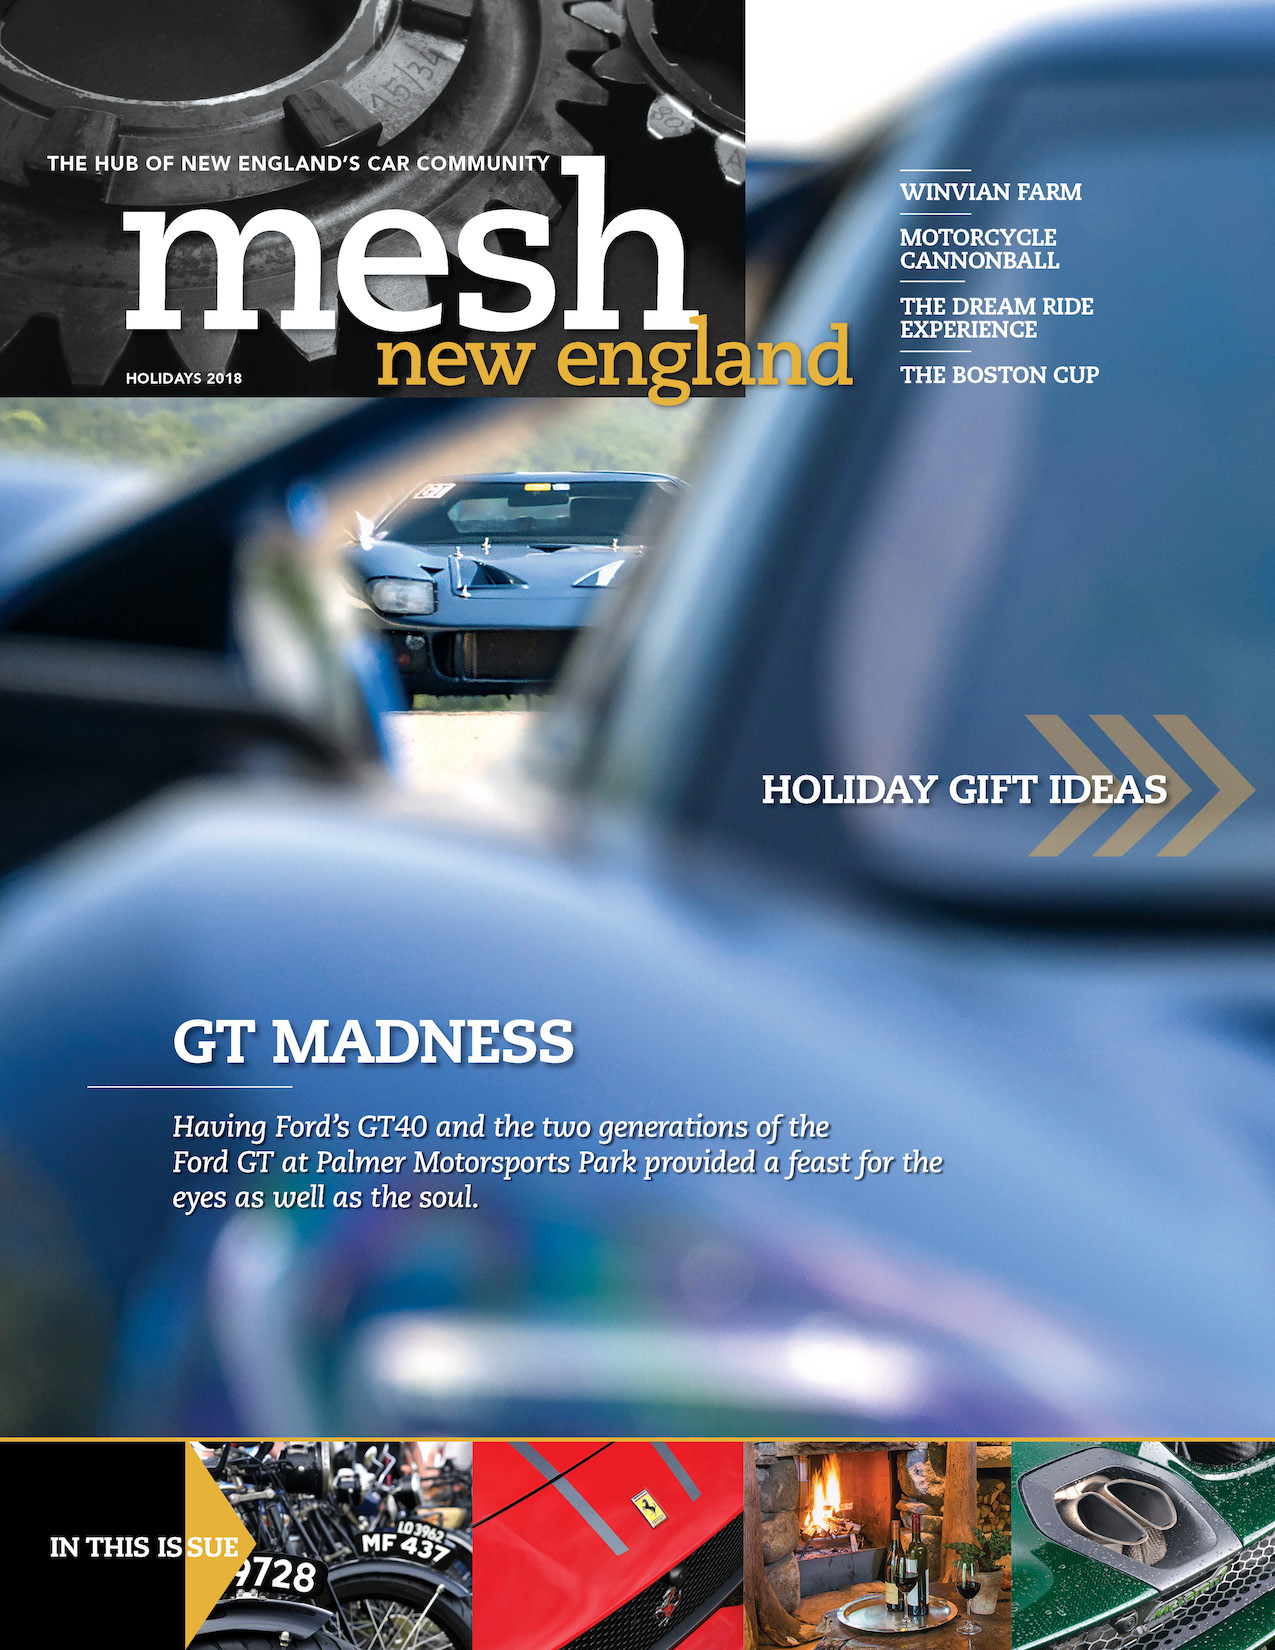 Holiday 2018 Cover of mesh New England Magazine Blue ford GT40 pictured on front.jpg